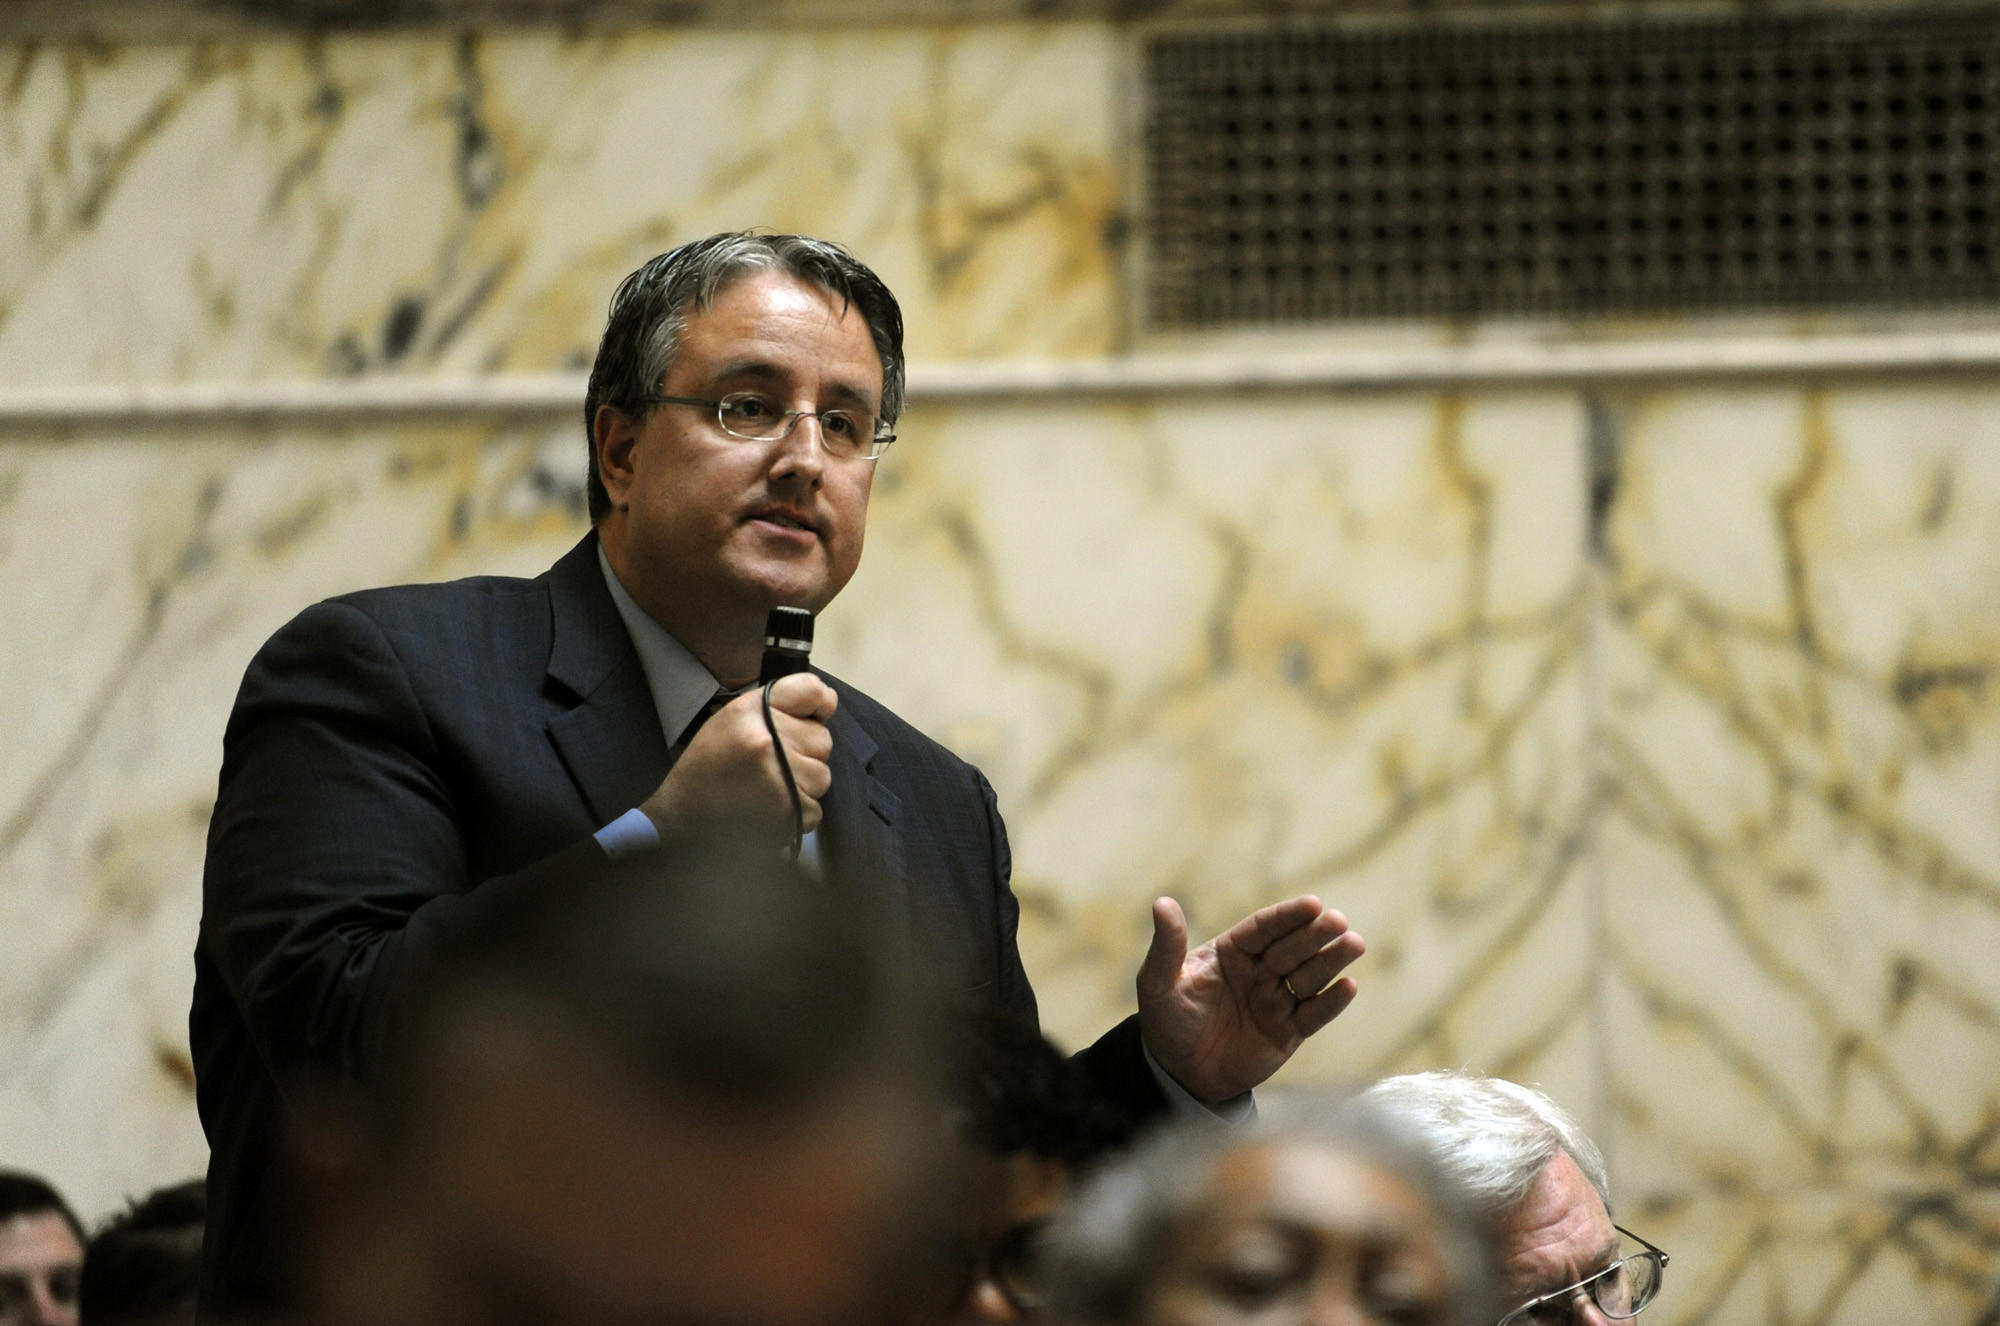 Sen. Richard Madaleno is lead sponsor of a bill that seeks to protect transgender people from discrimination in housing, at work and in public places. 2012 File Photo